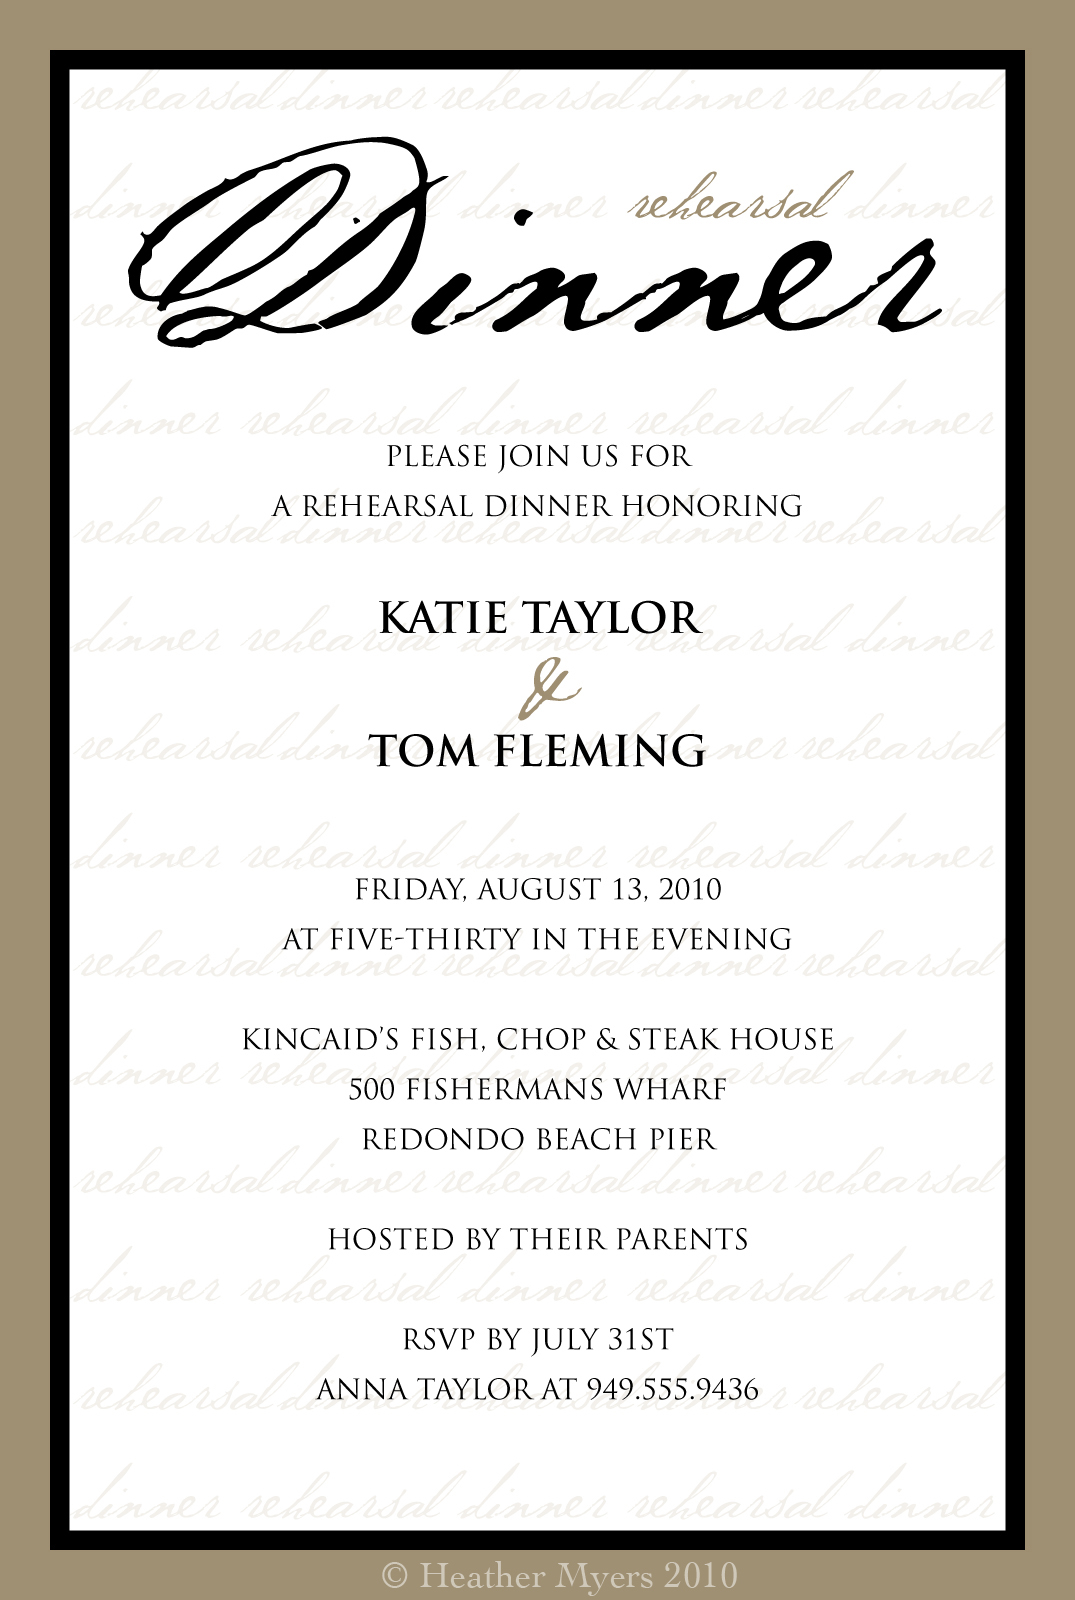 Dinner invitation templates free stopboris Gallery